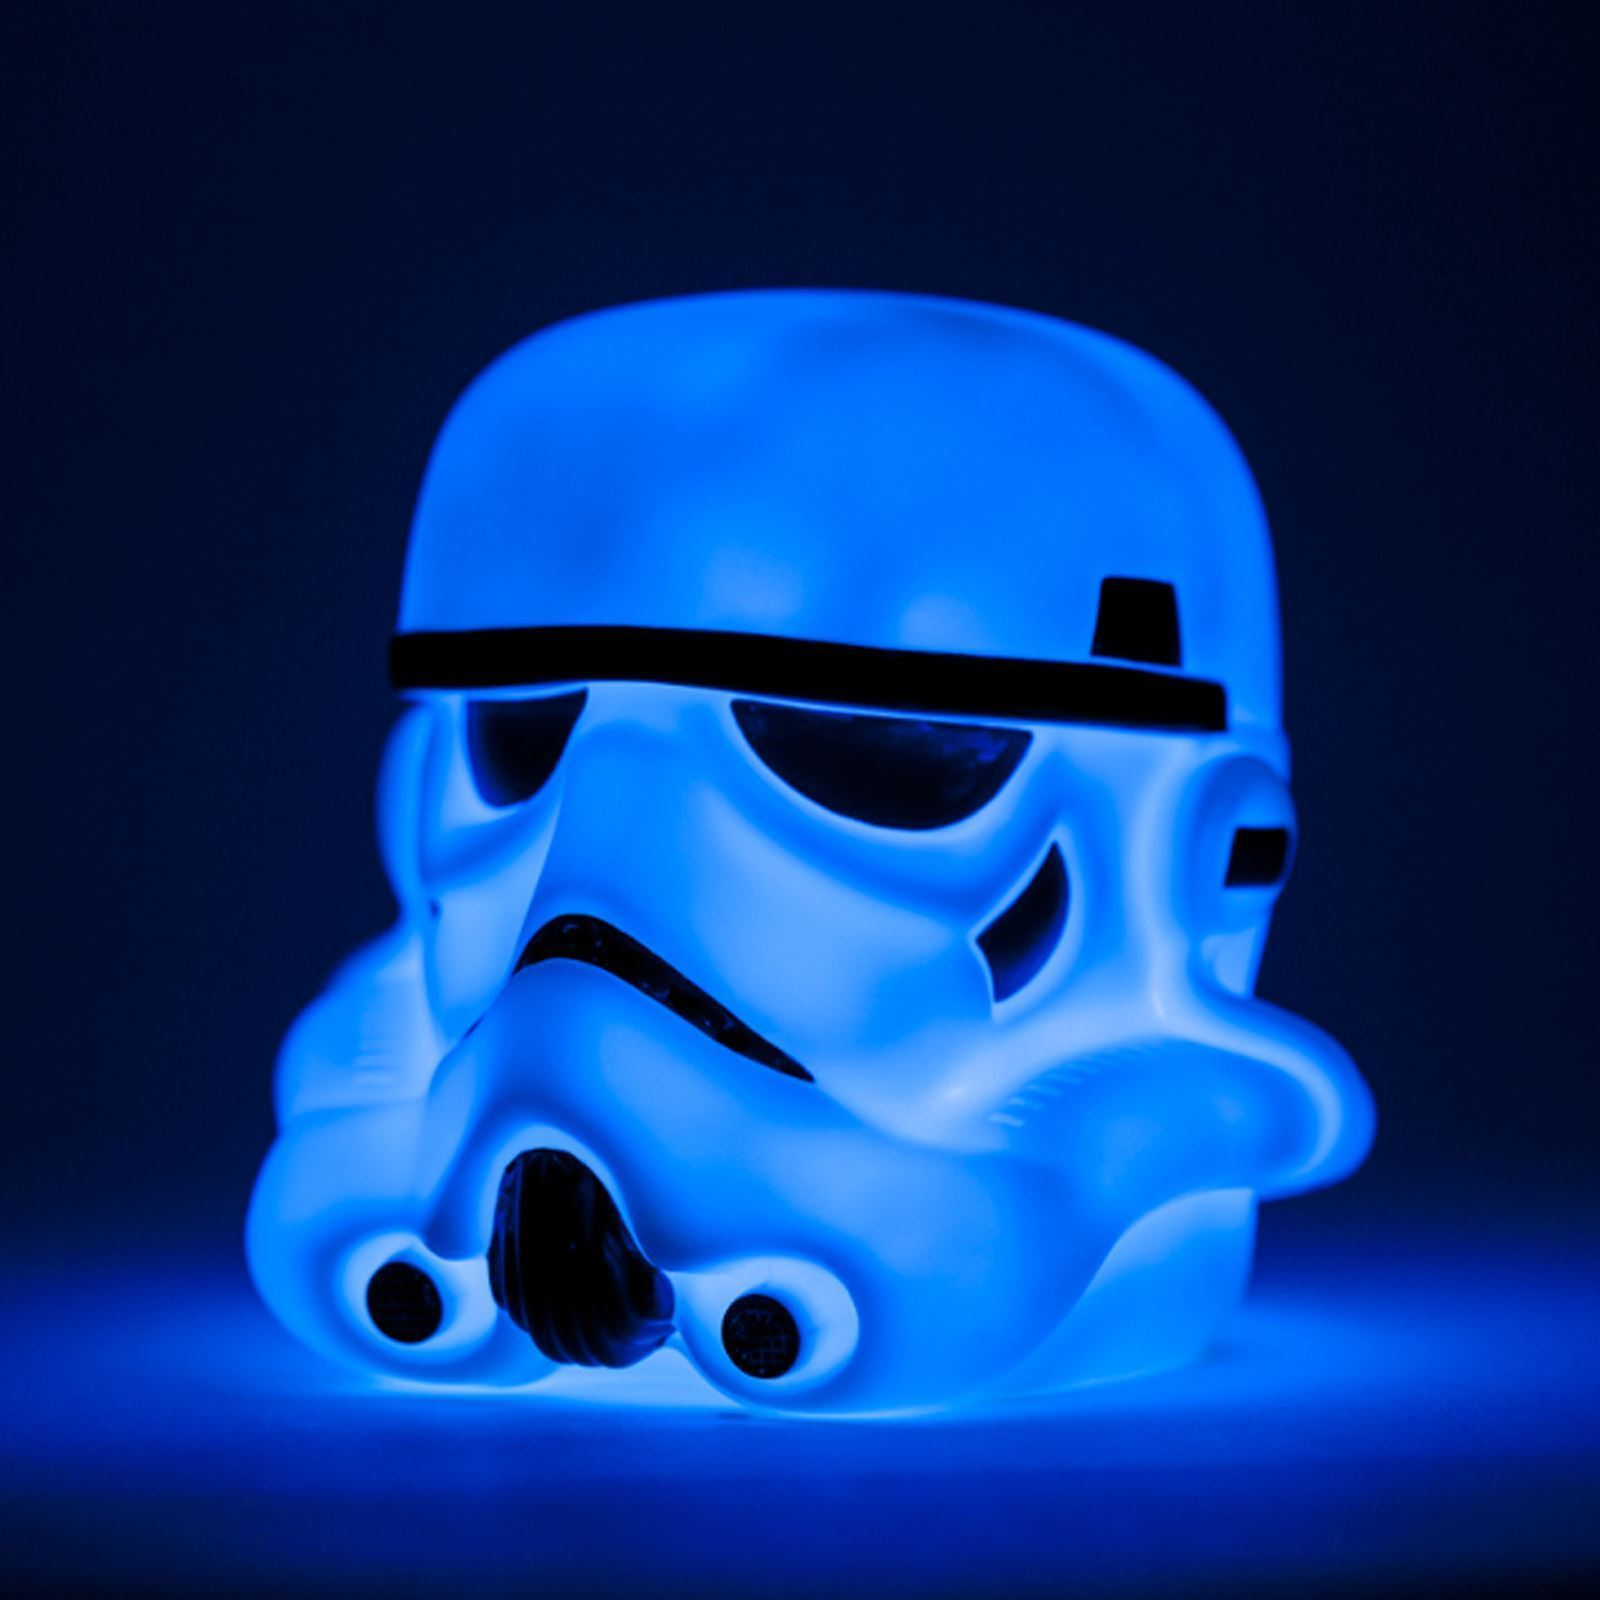 Star Wars LED Light - Storm Trooper image